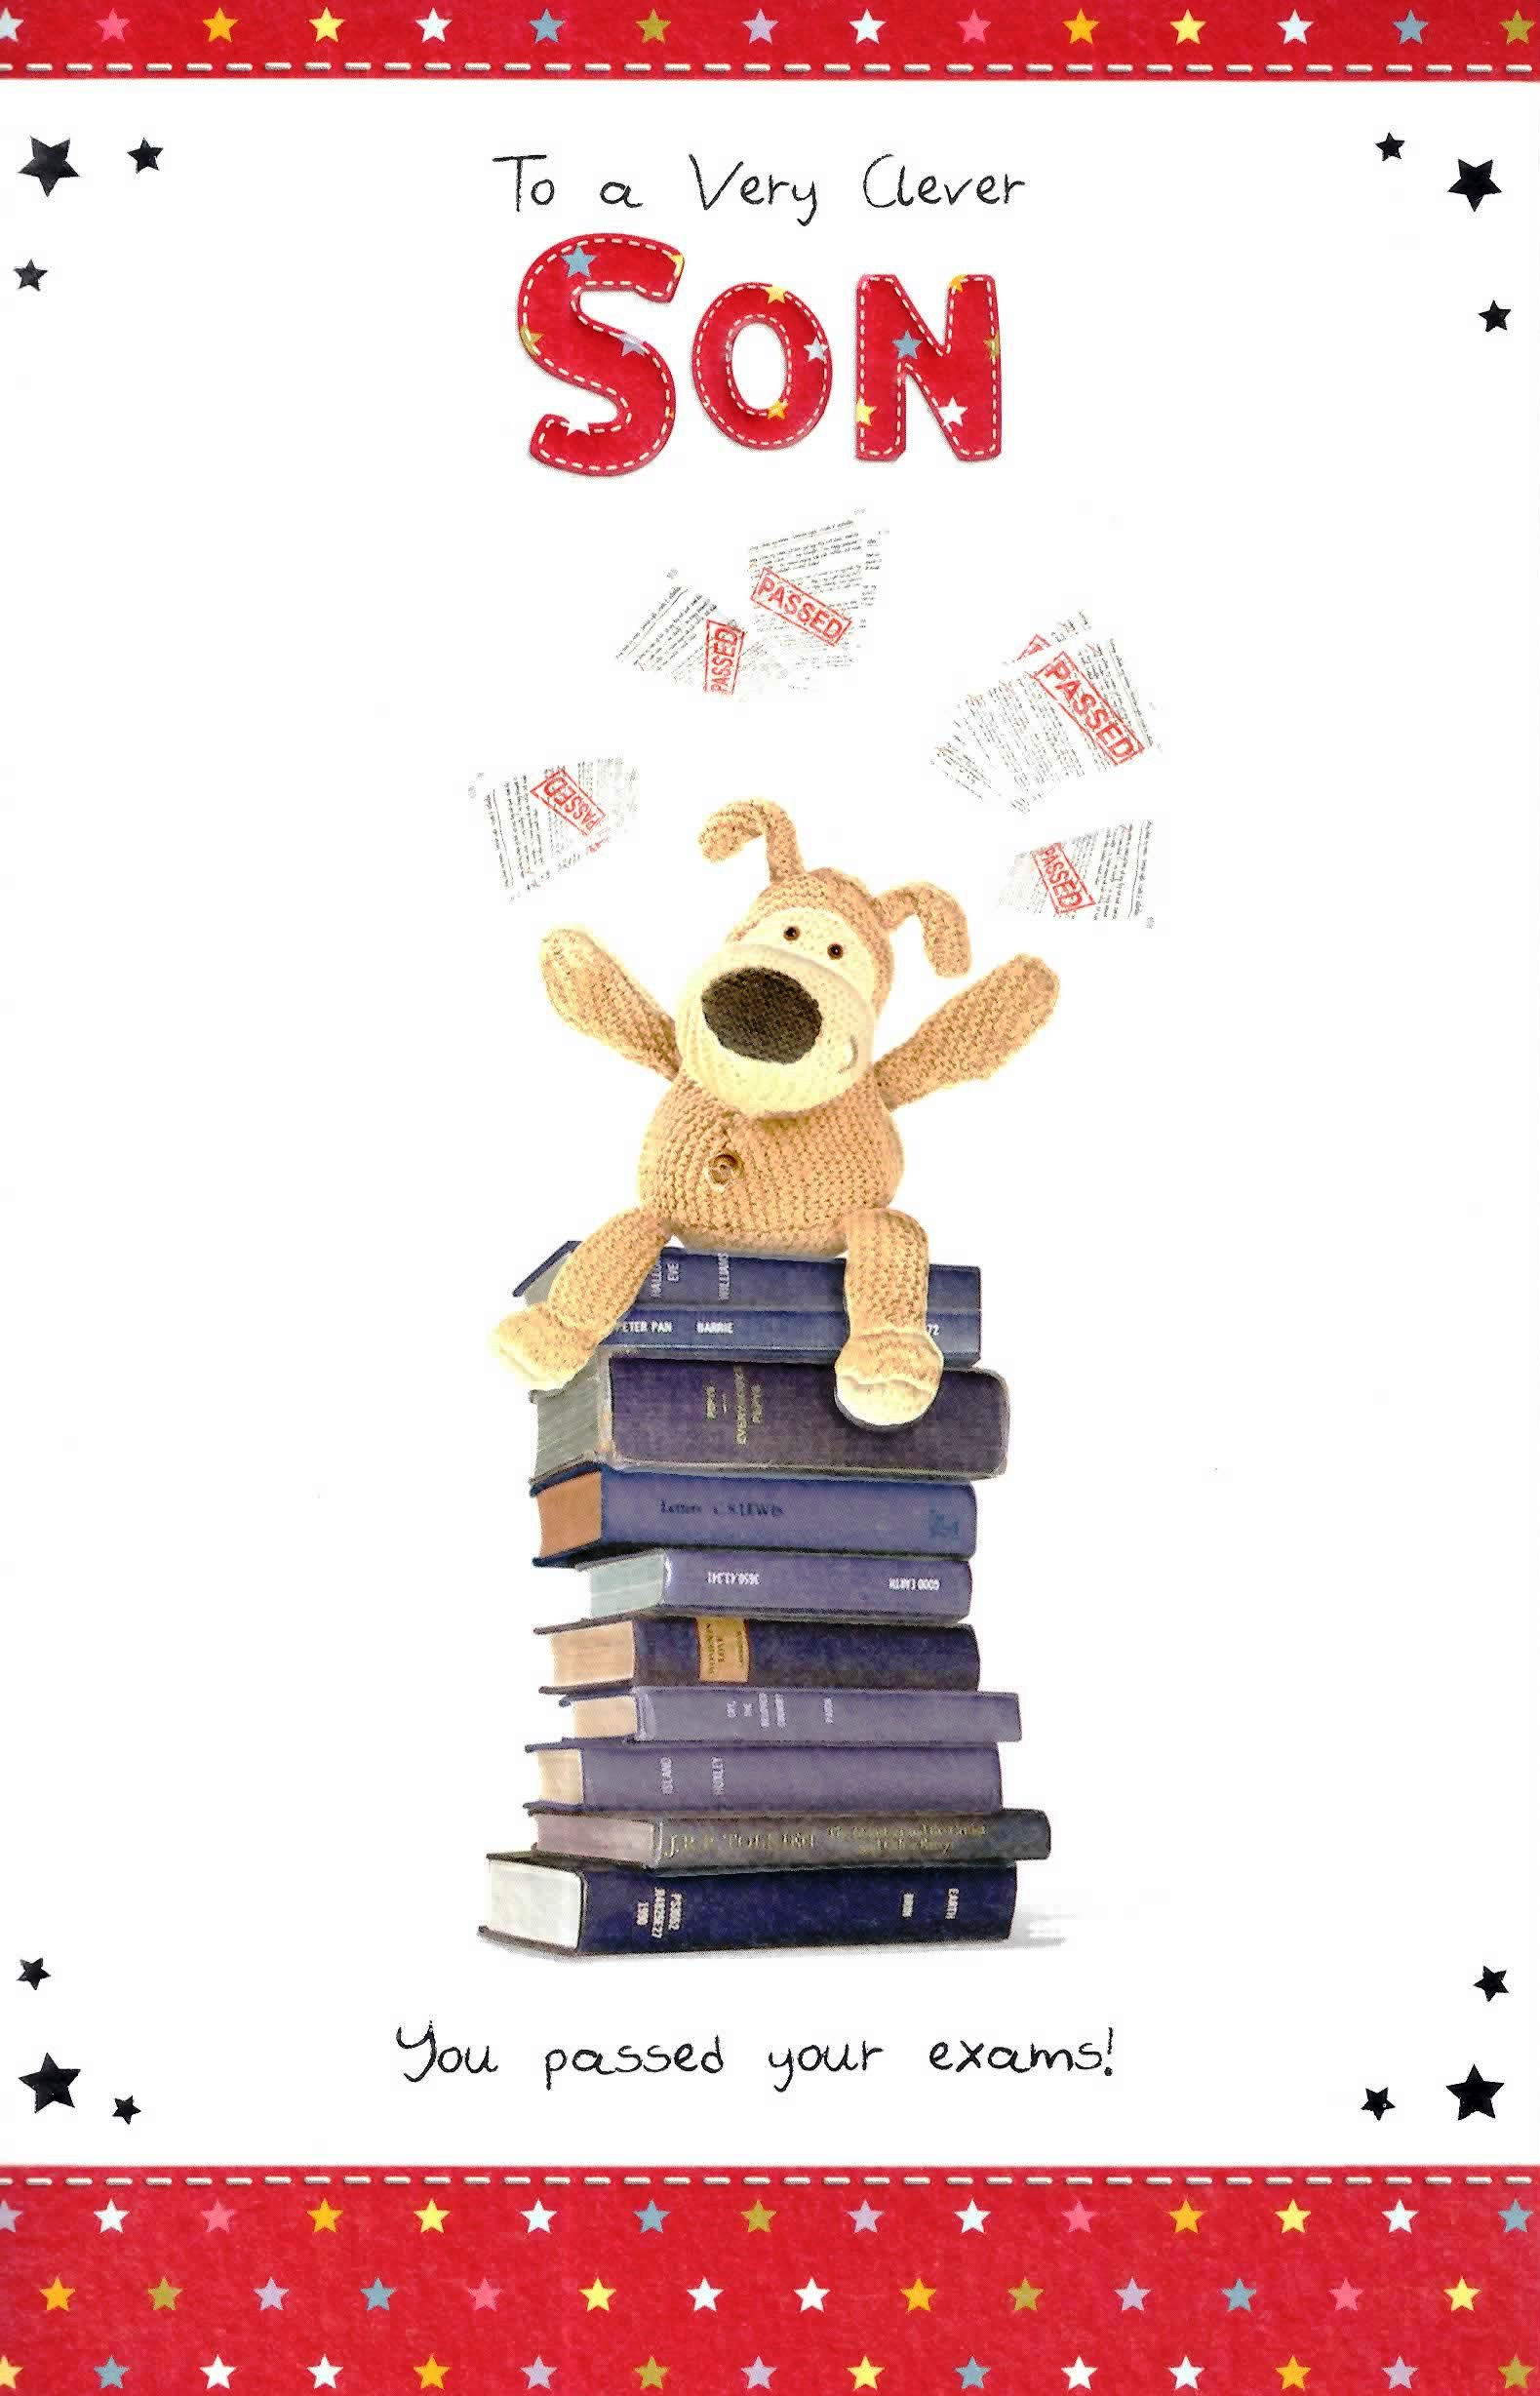 Boofle clever son you passed exams congratulations card greeting sentinel boofle clever son you passed exams congratulations card greeting cards m4hsunfo